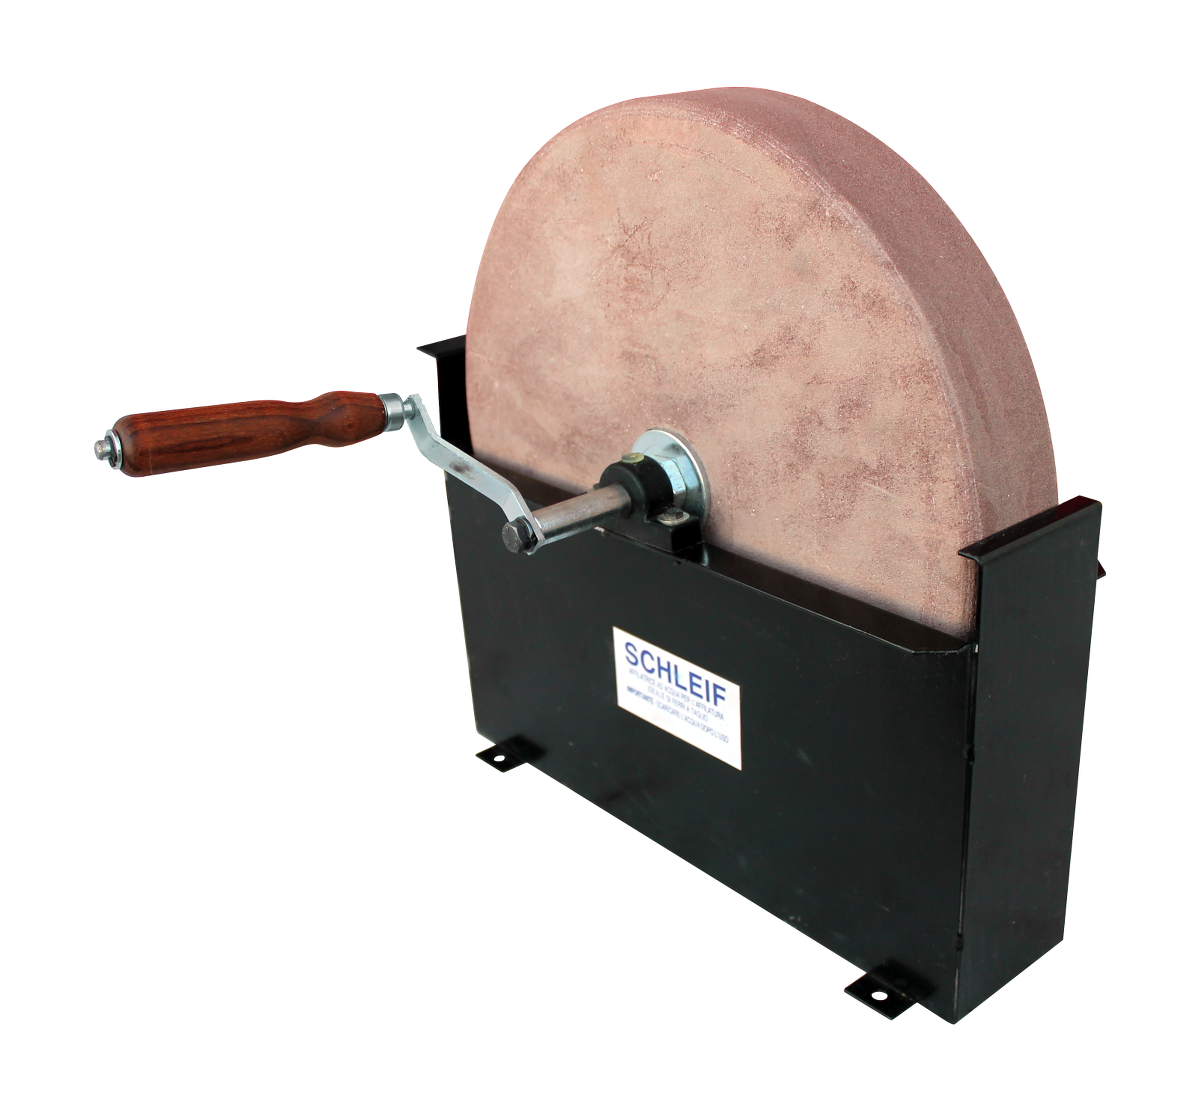 angelo-b-manual-grinding-wheel-3.png